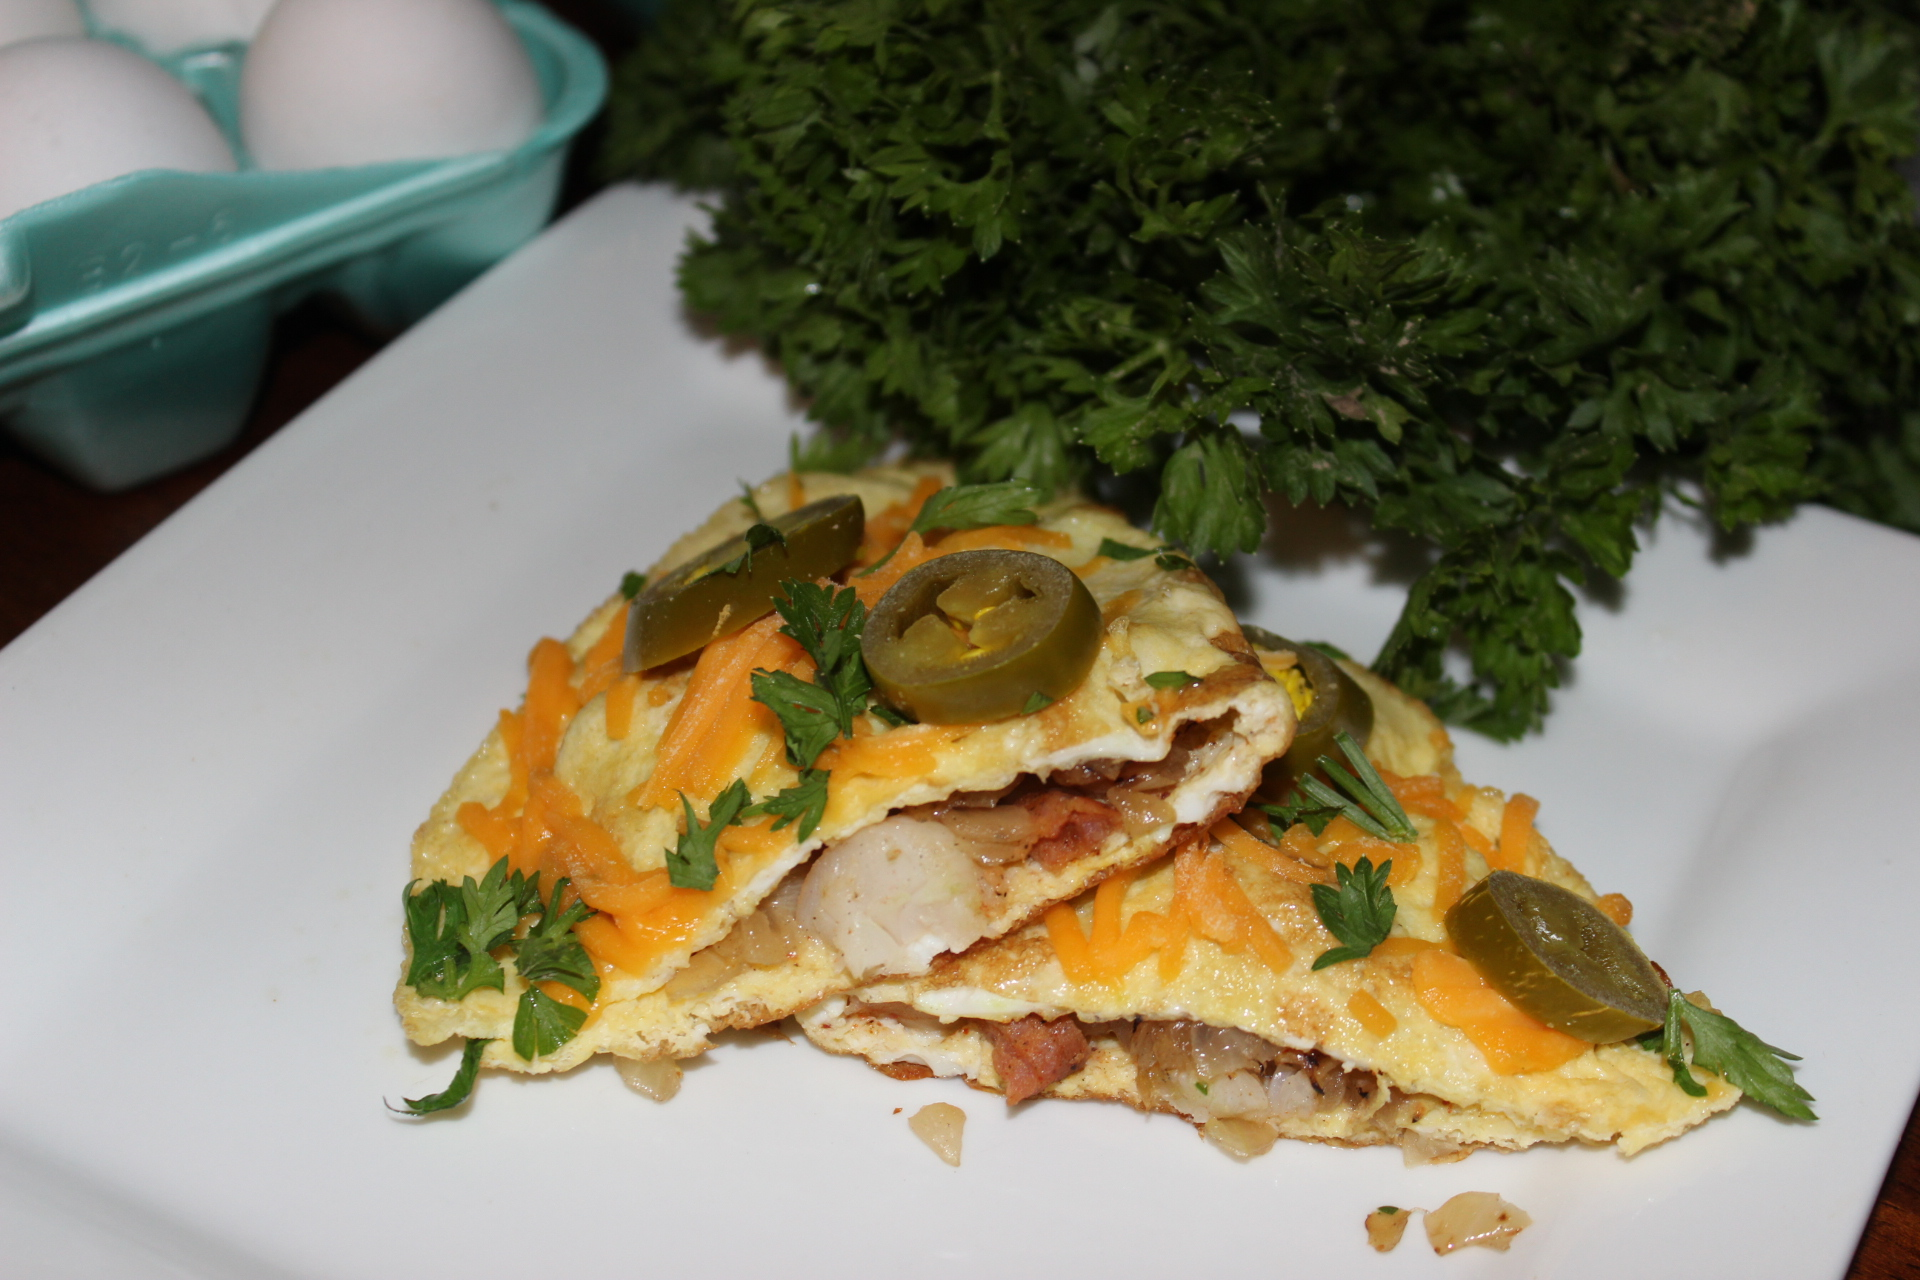 Shrimp and Andouille Sausage Omelette